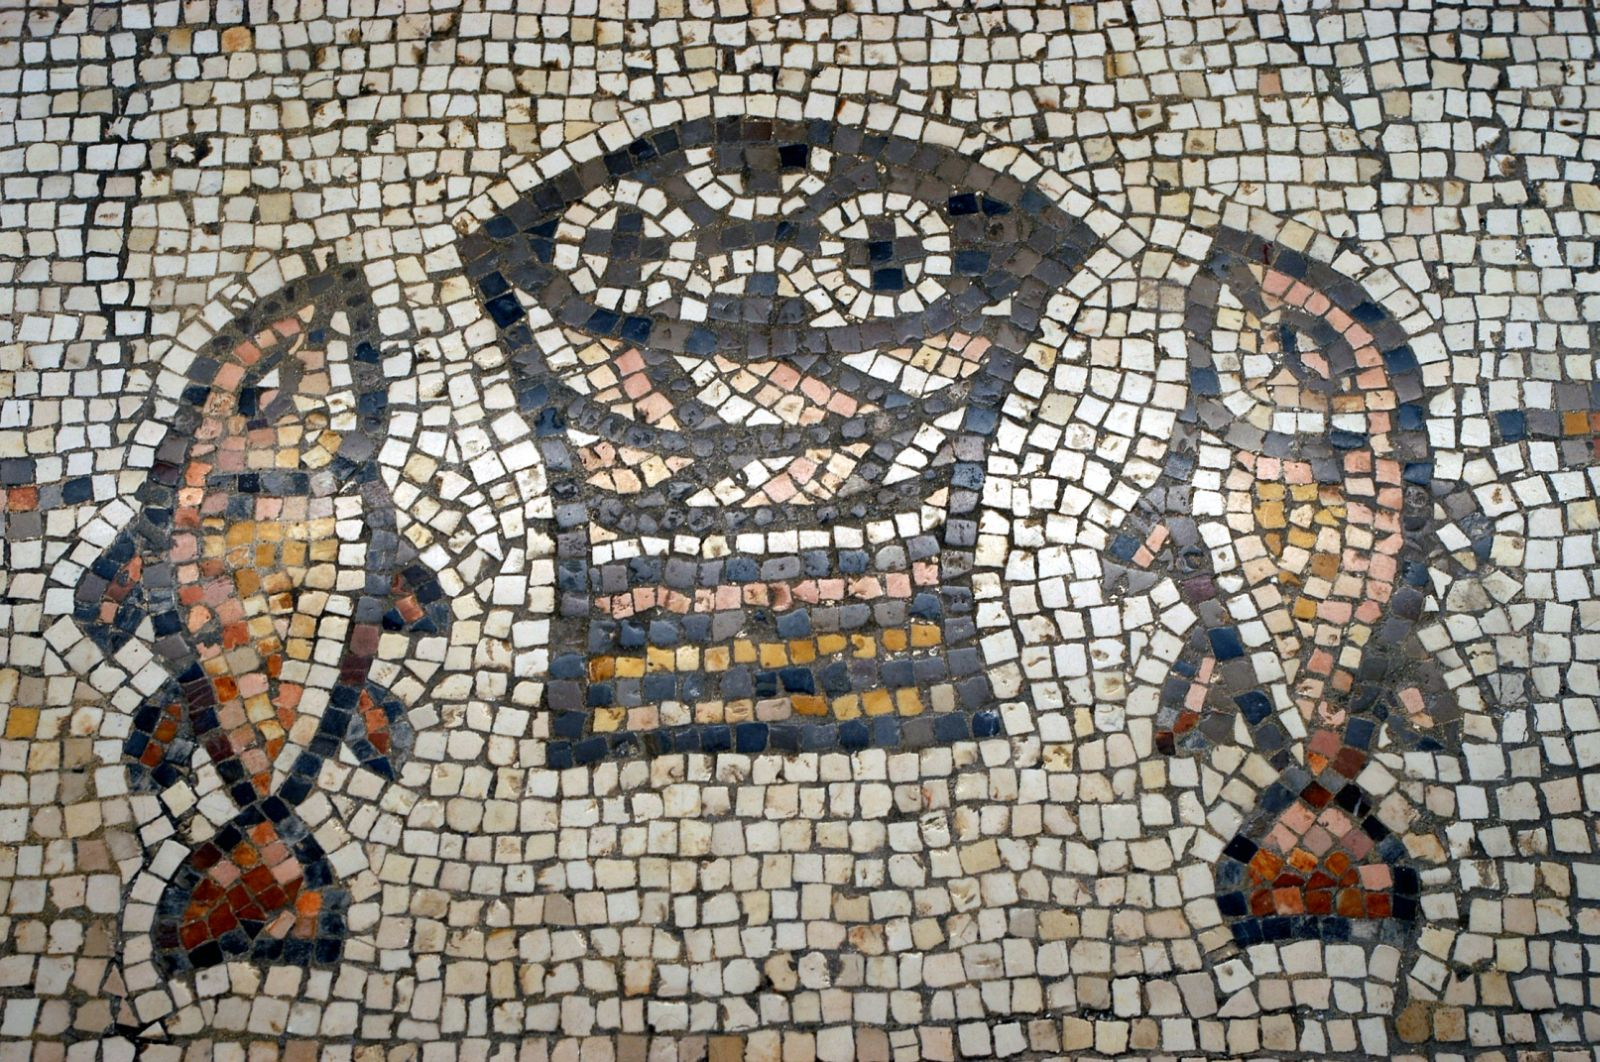 Byzantine mosaic symbolizing the miracle of the multiplication of the loaves and fishes. Photo courtesy of the Israel Ministry of Tourism